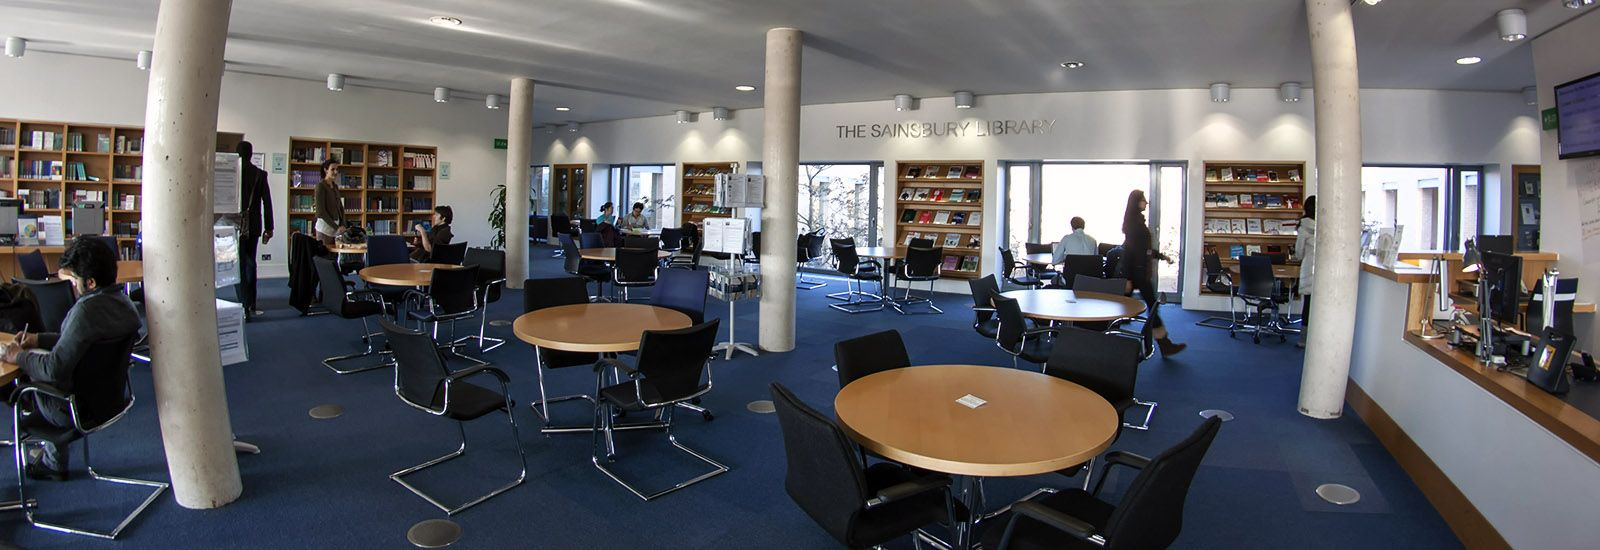 A wide shot of students and tables inside the Sainsbury Library